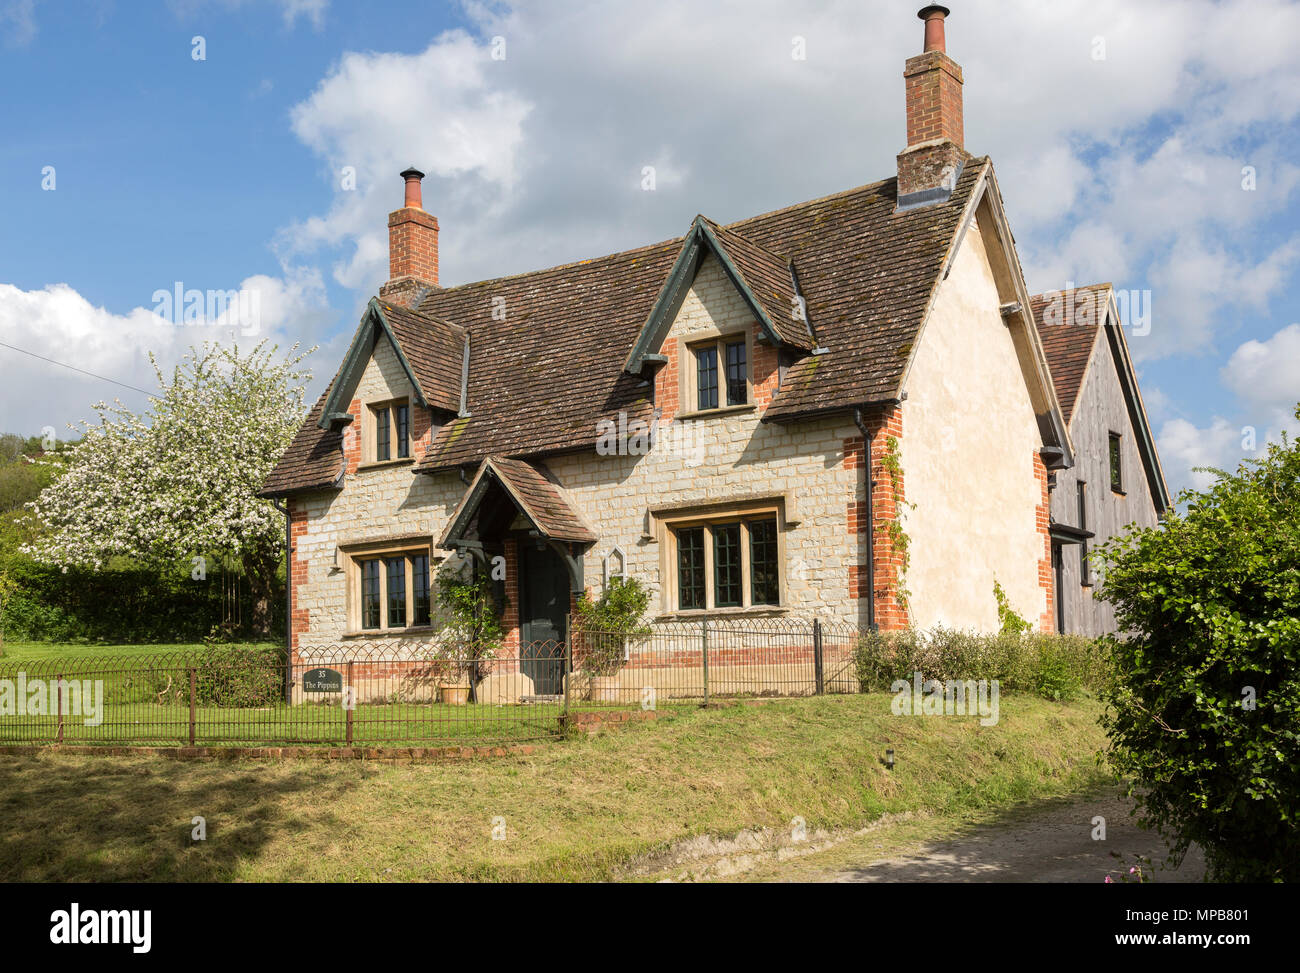 Attractive detached house built from chalk stone in village of Compton Bassett, Wiltshire, England, UK - Stock Image